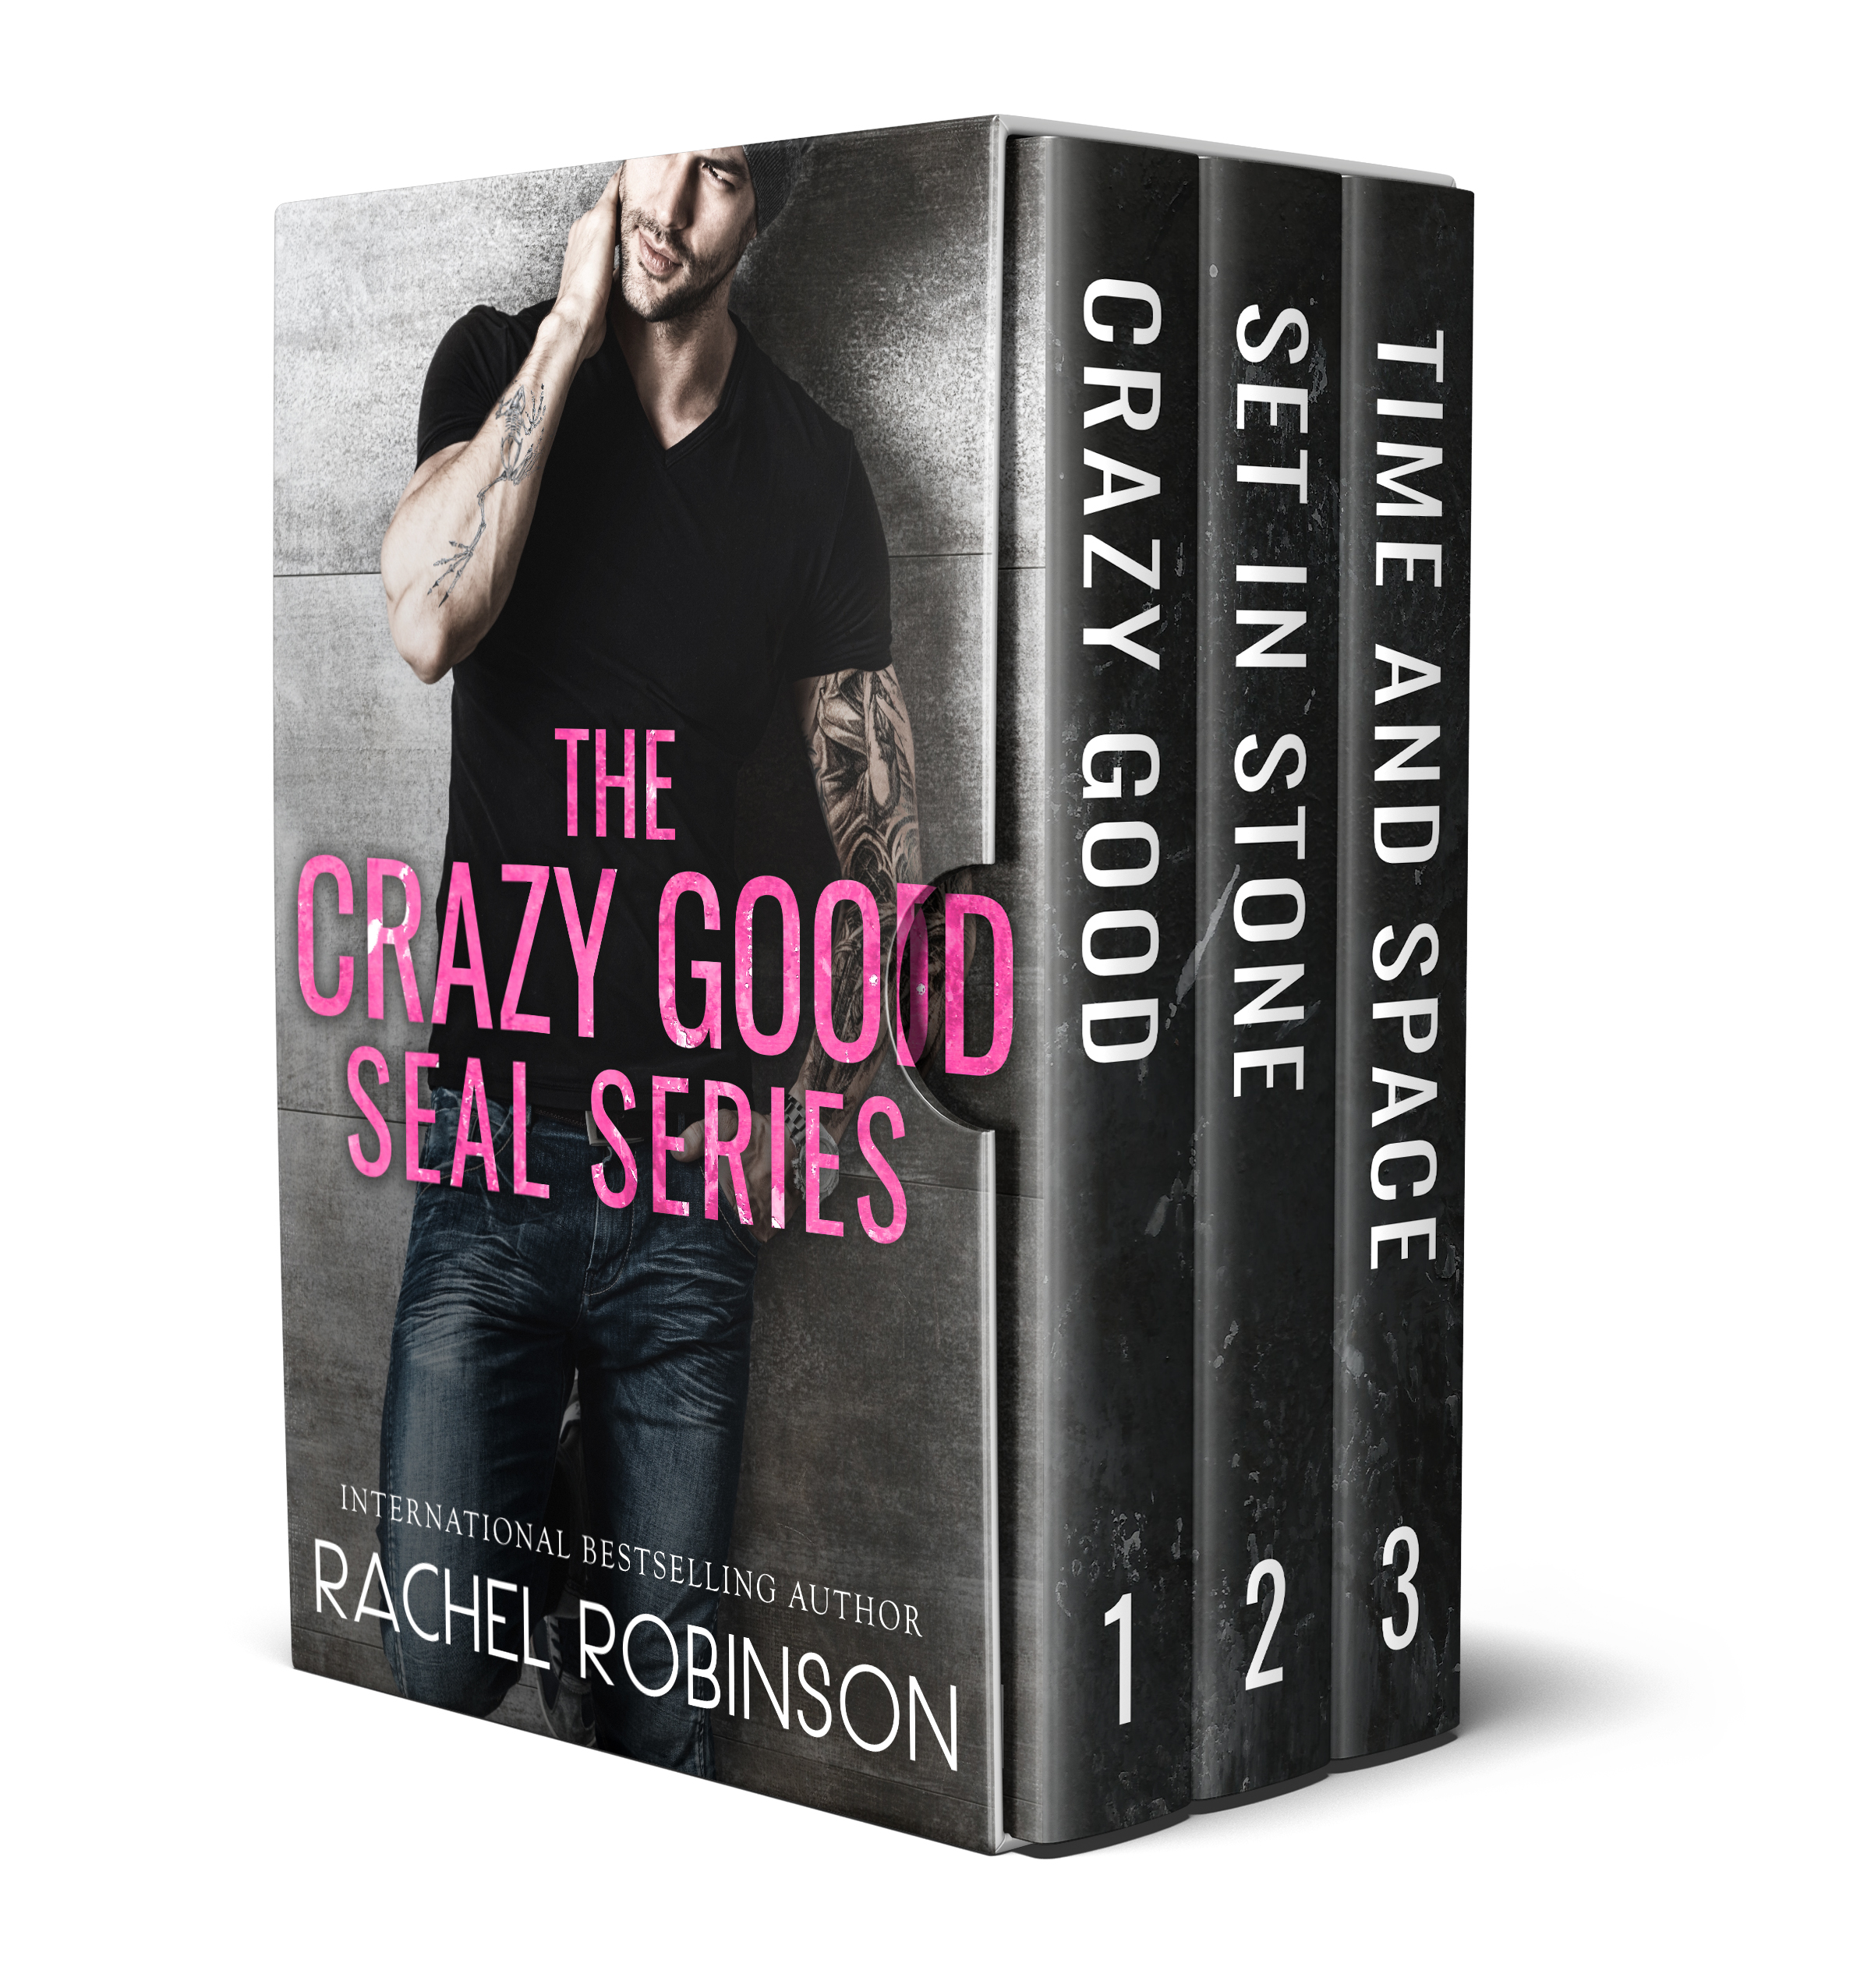 The Crazy Good SEAL Series Boxed Set